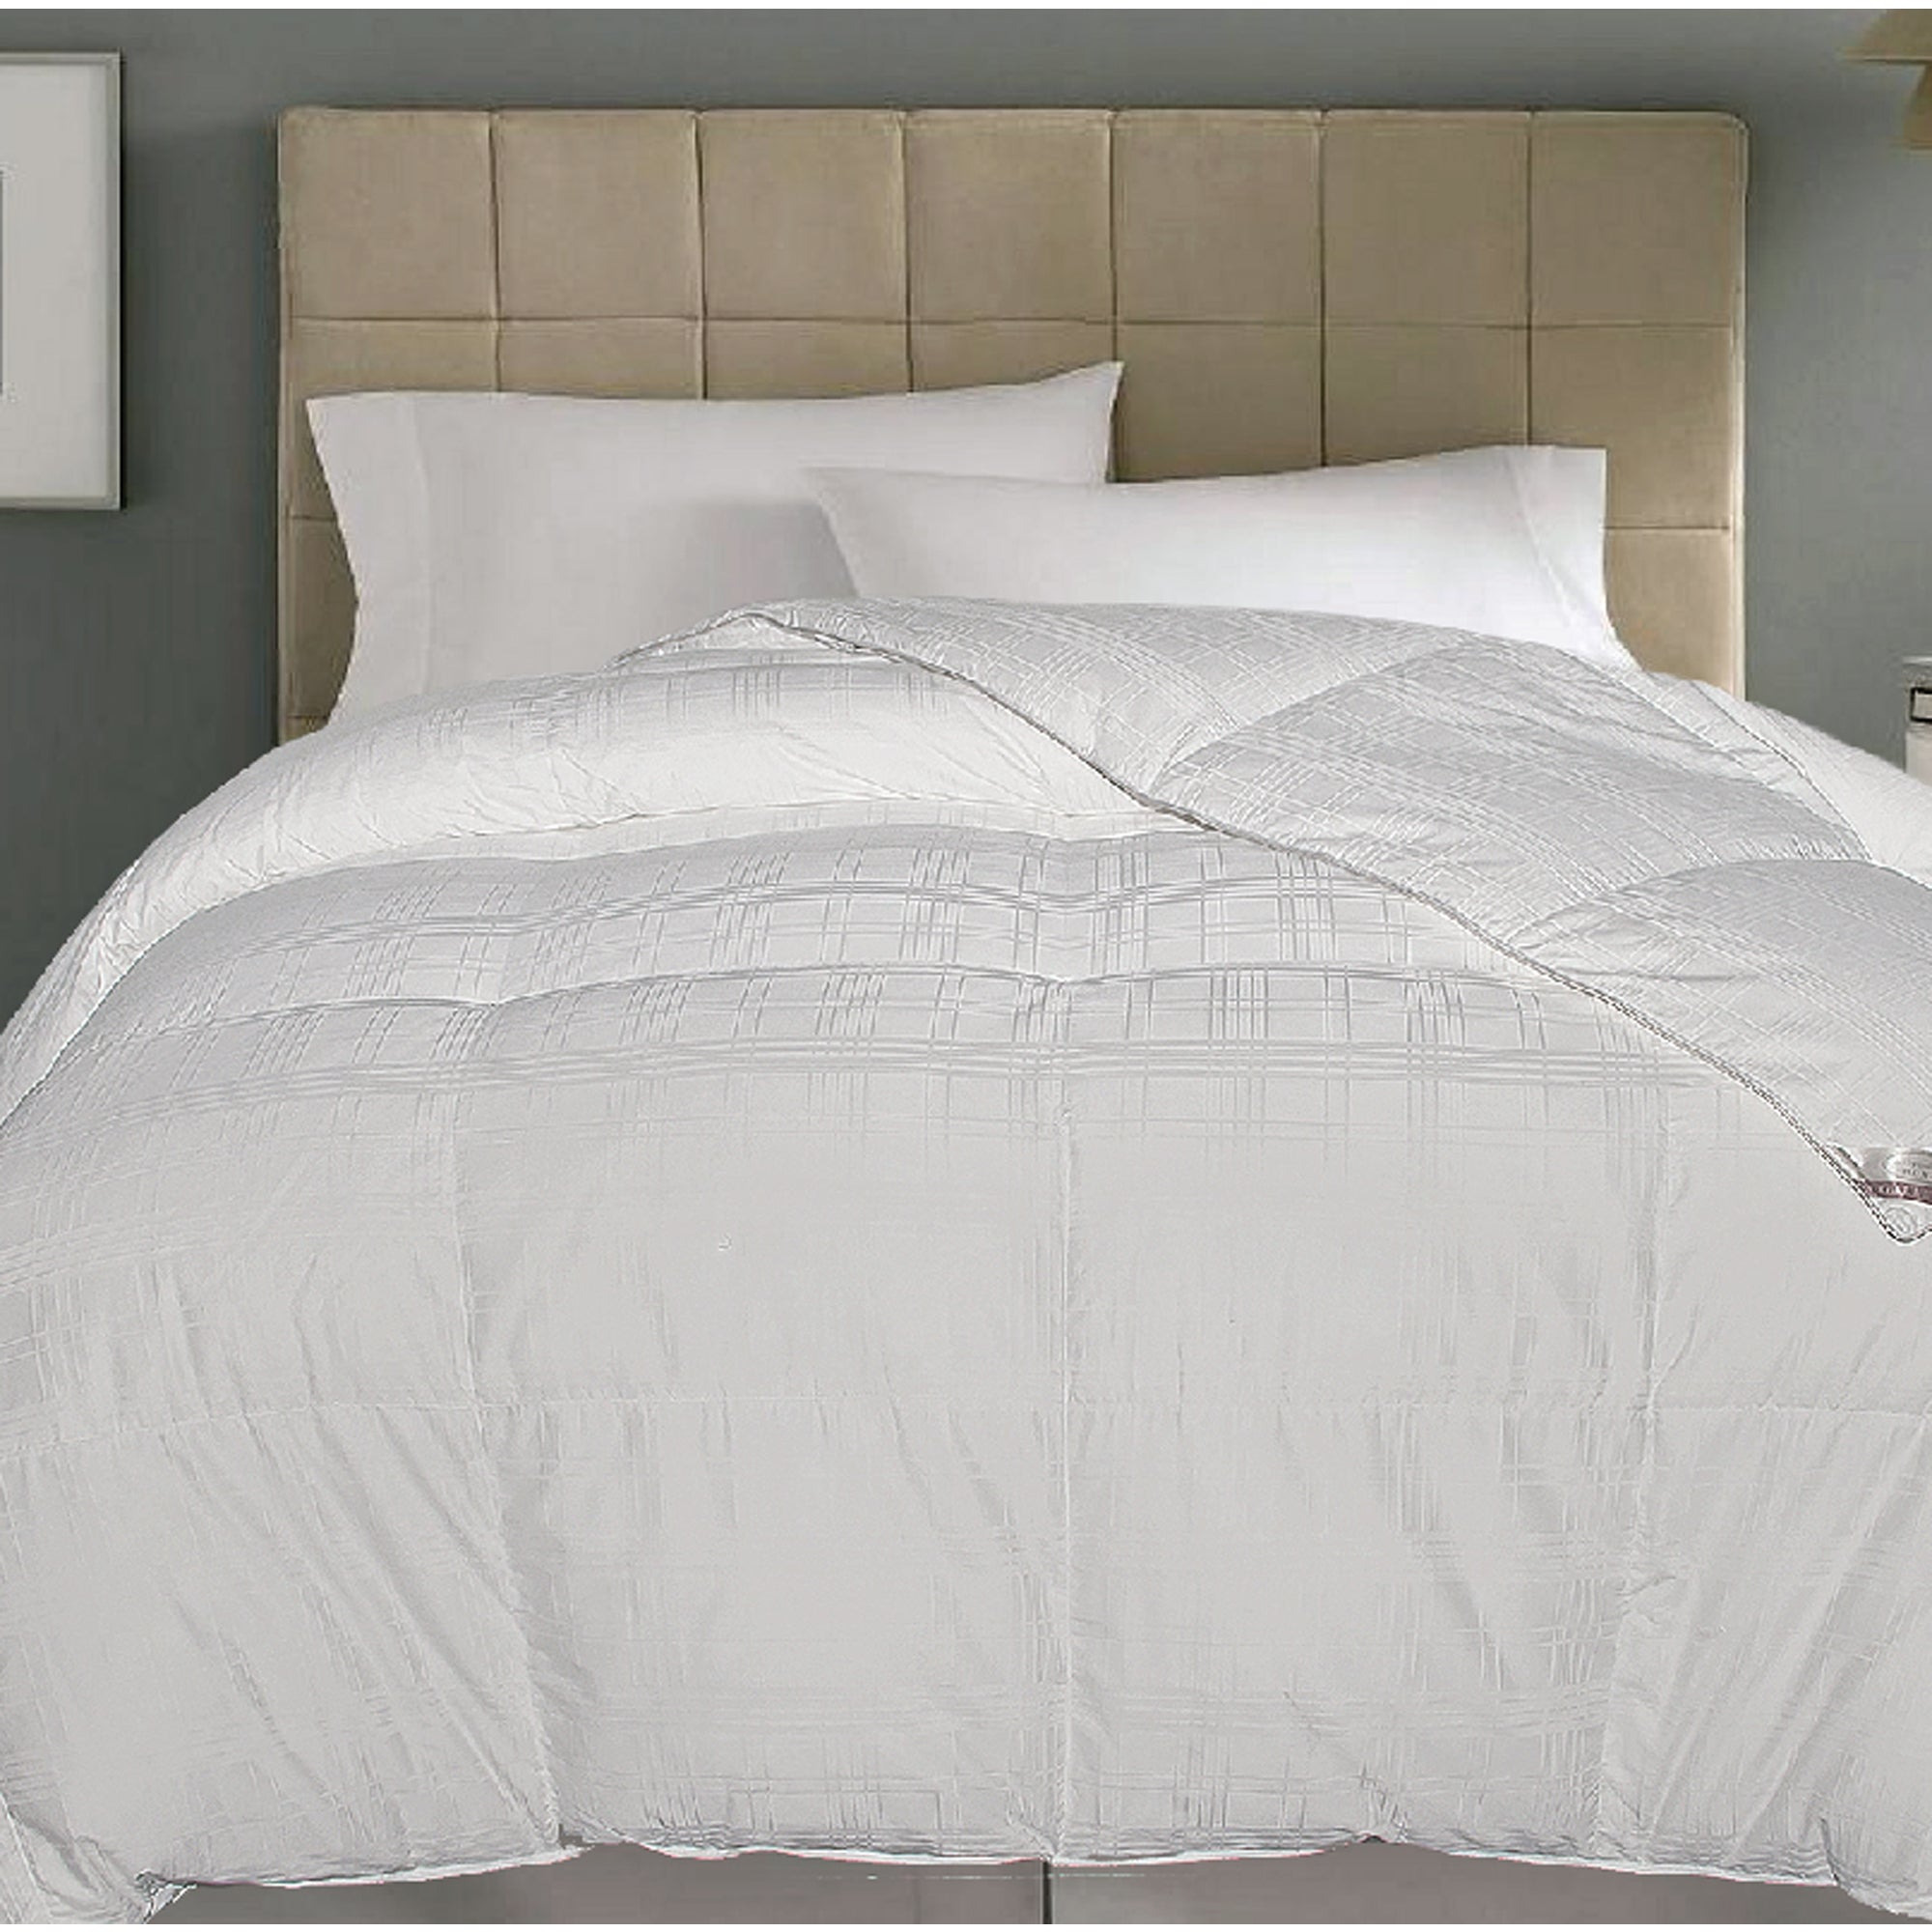 bath cozyclouds by hungarian product bedding white overstock downlinens free down goose superior shipping today comforter